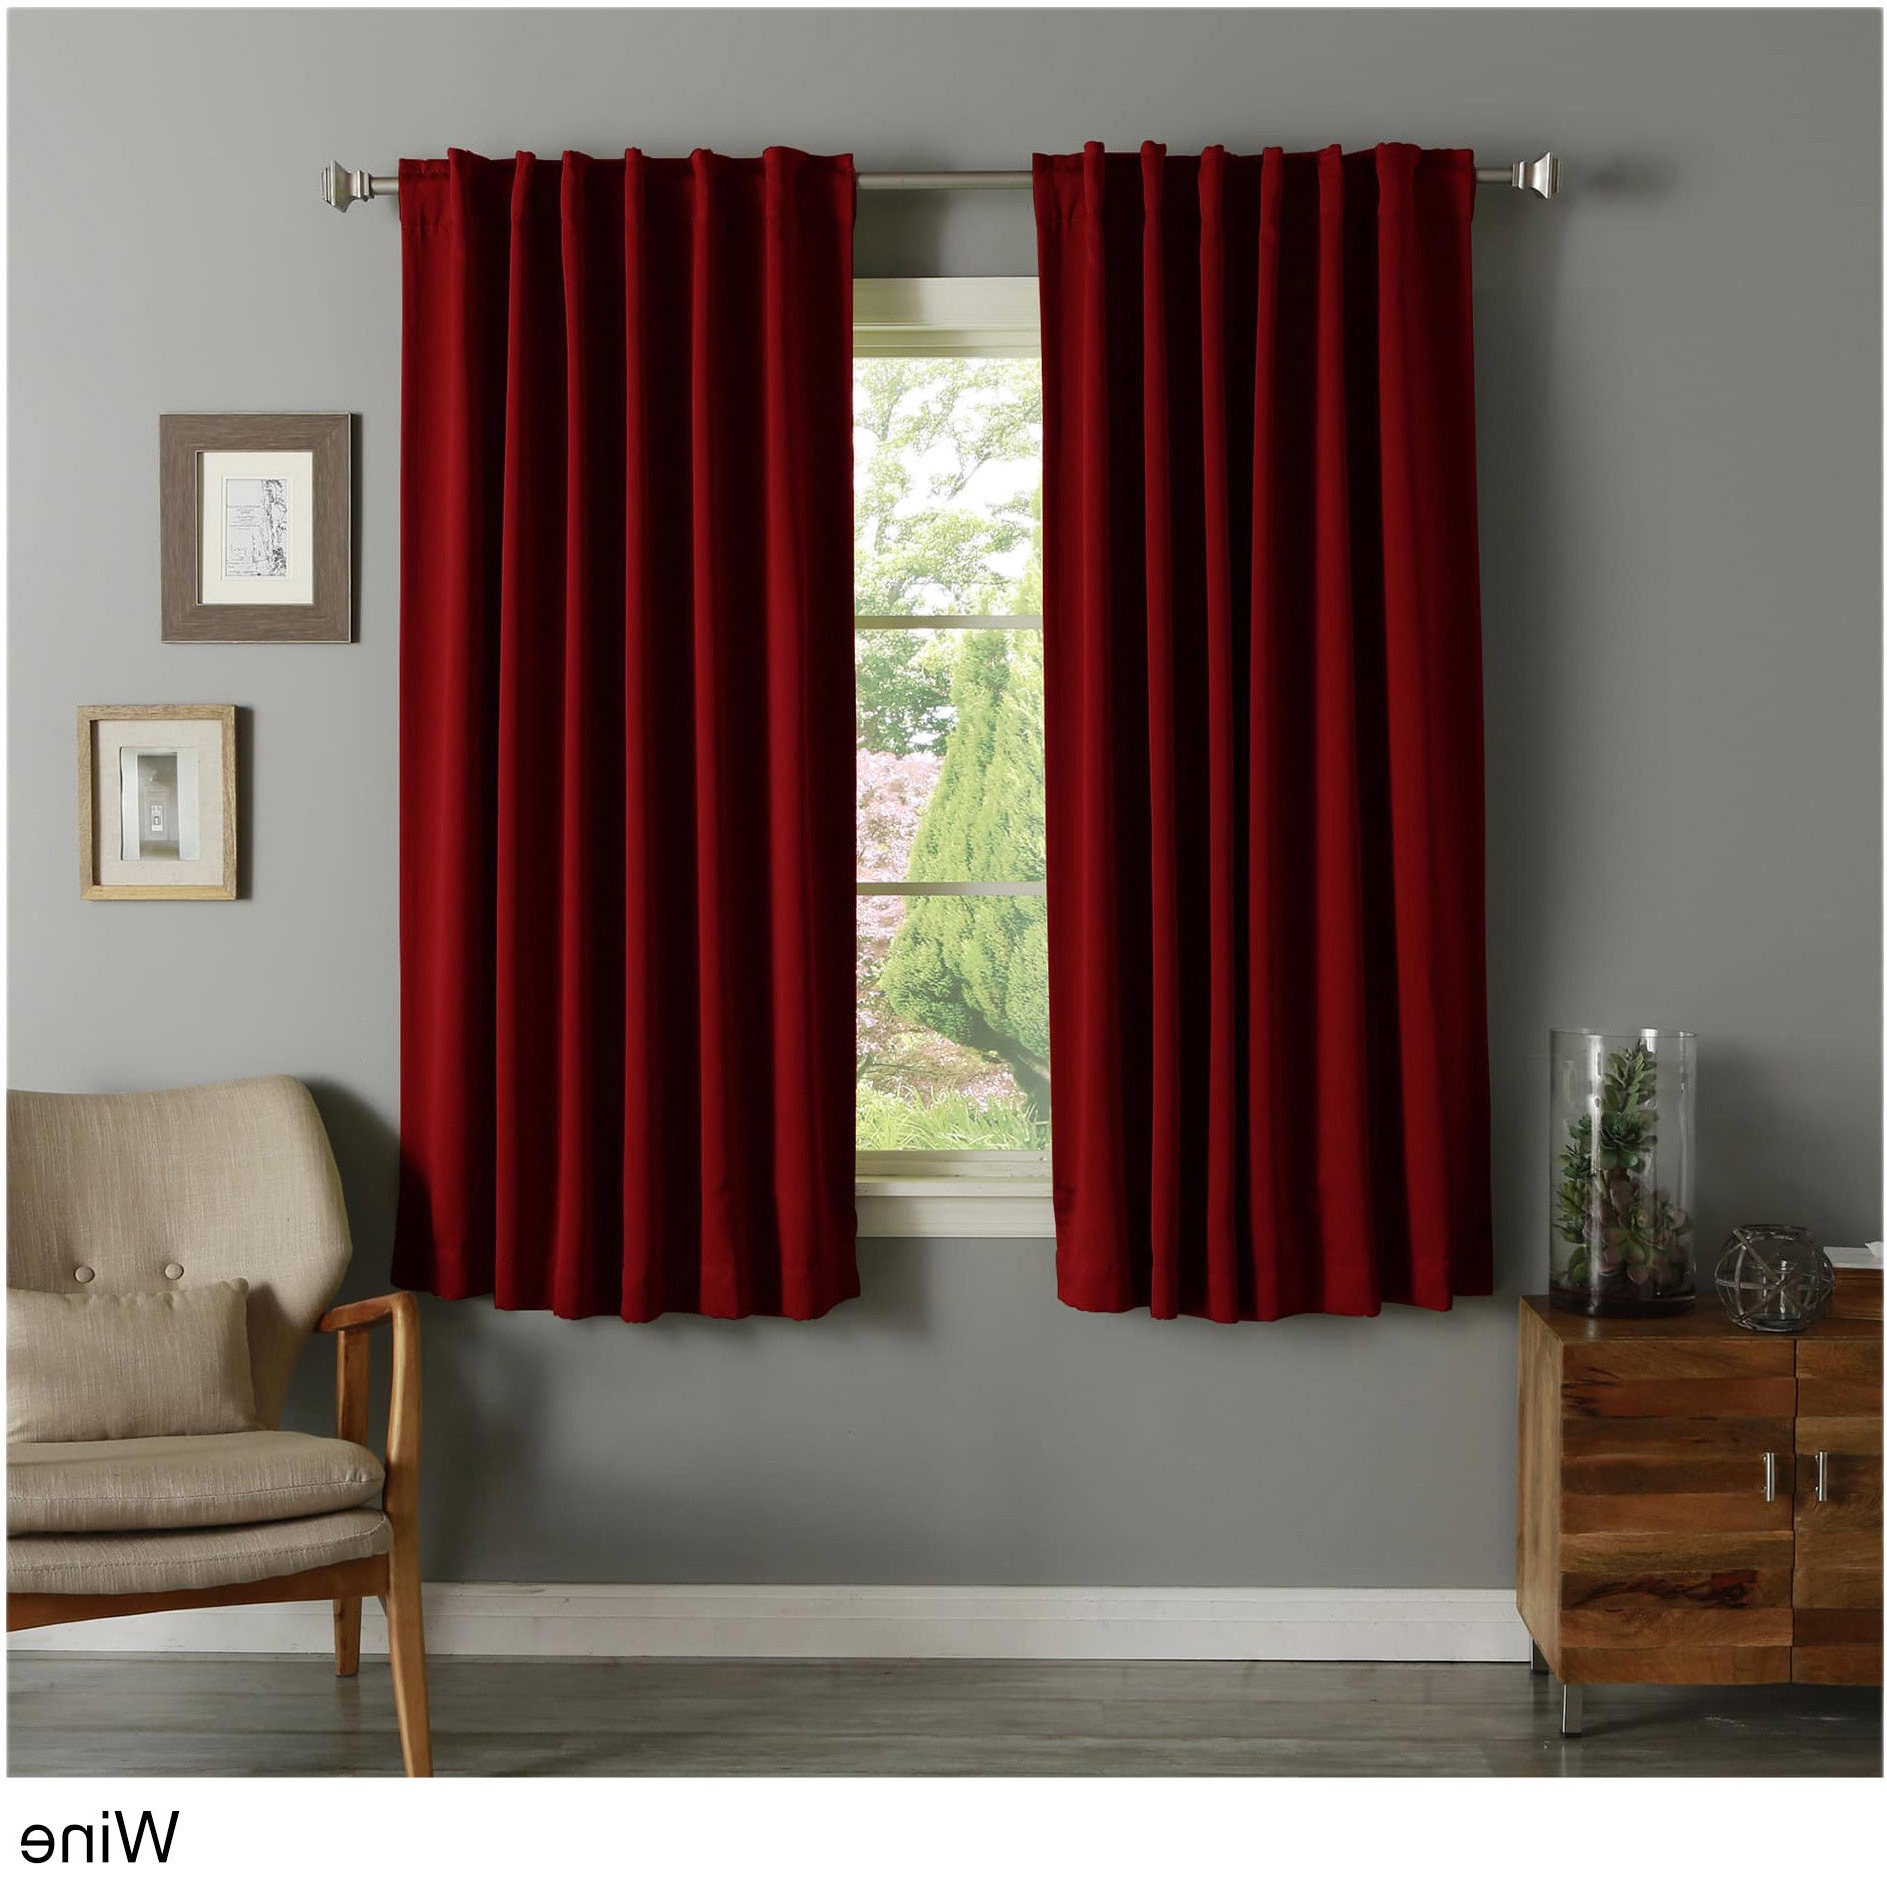 Aurora Home Solid Insulated Thermal 63 Inch Blackout Curtain Panel Pair Intended For Recent Curtain Panel Pairs (View 9 of 20)